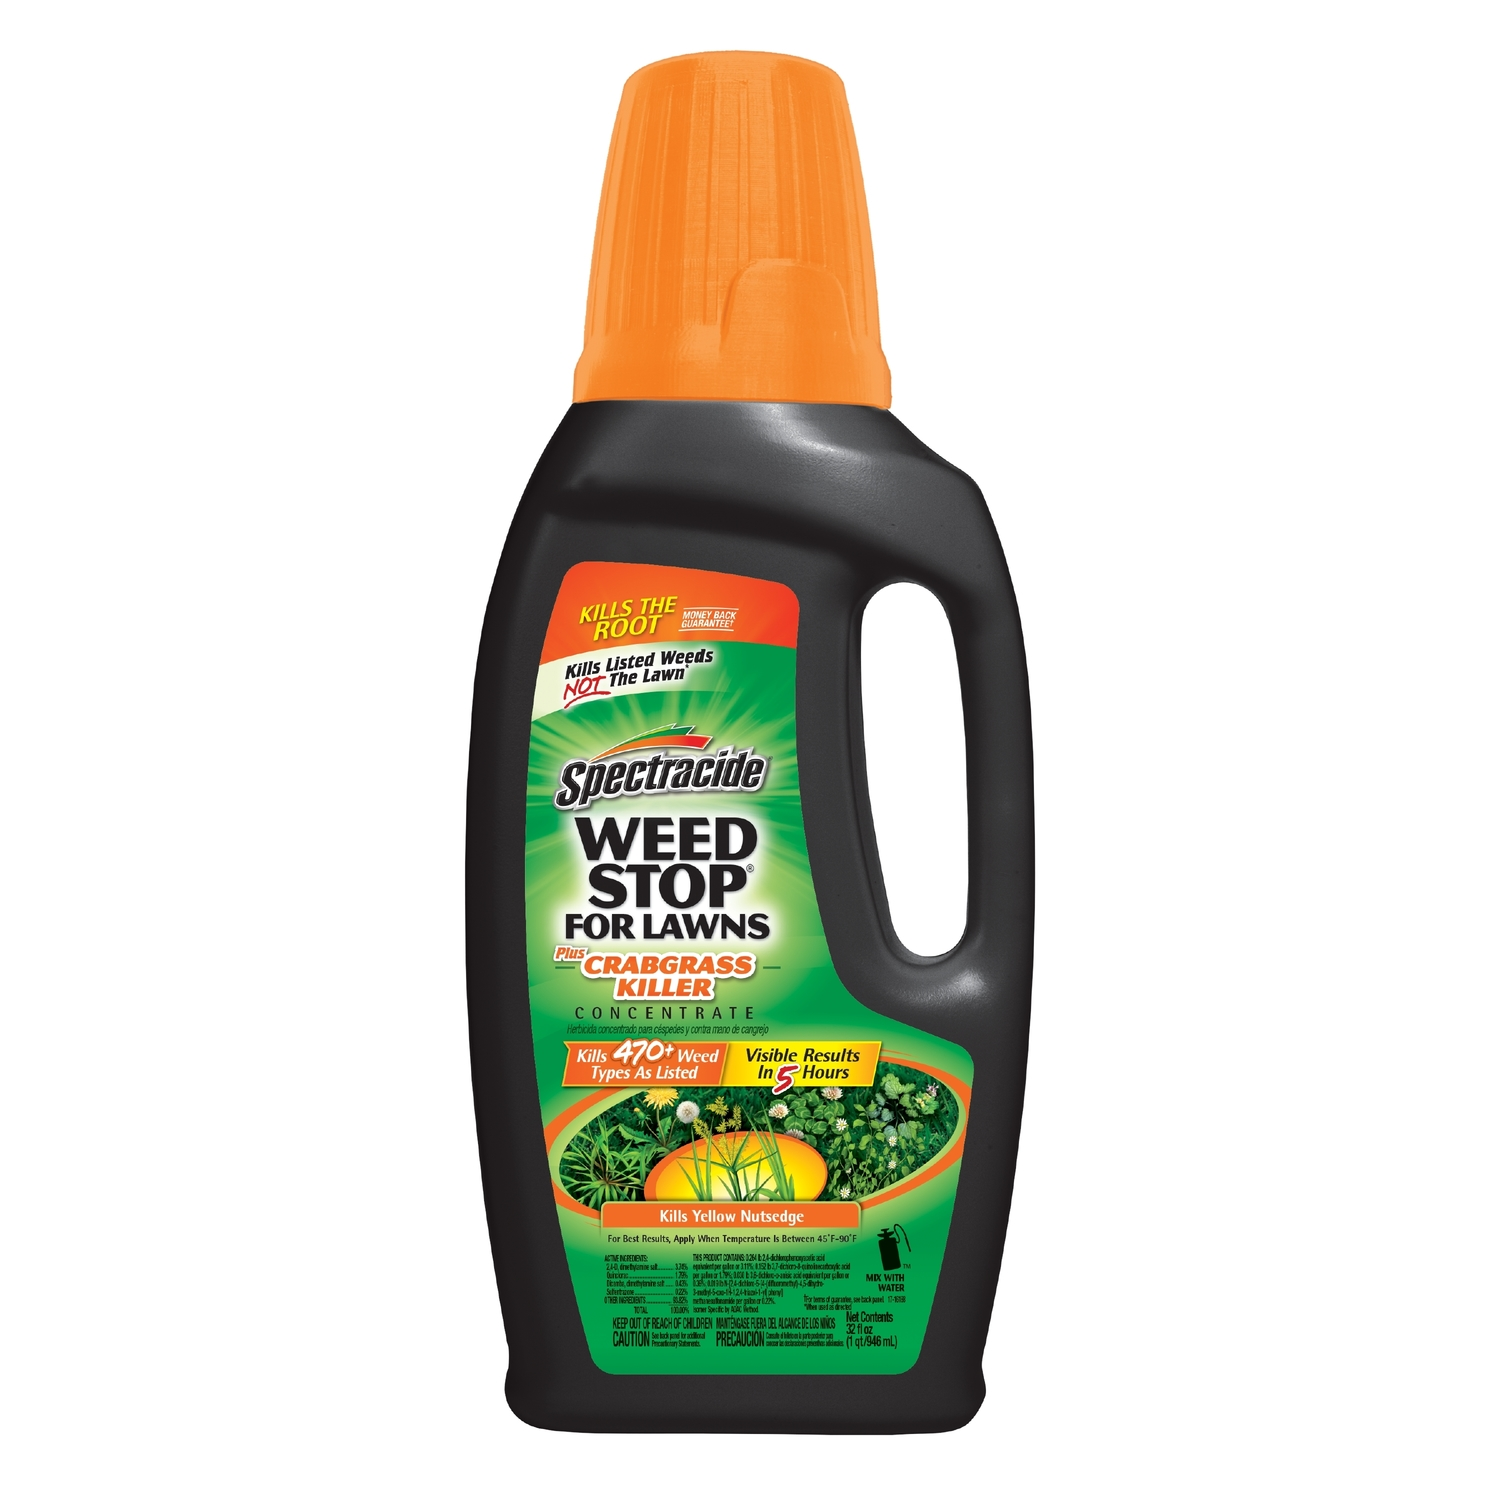 Spectracide  Weed Stop  Concentrate  Weed and Crabgrass Killer  32 oz.